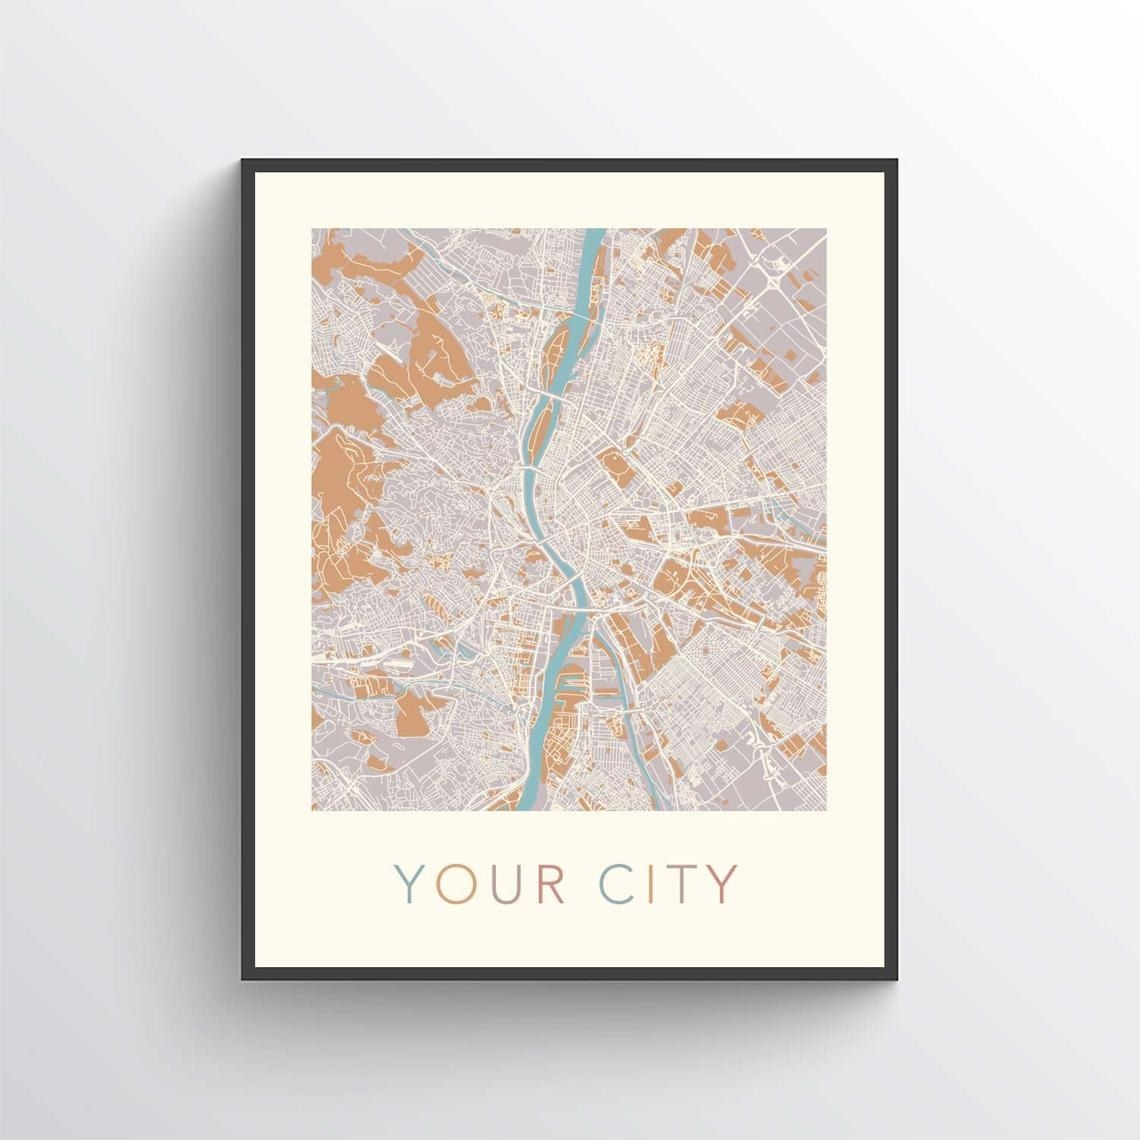 An example of the custom map print